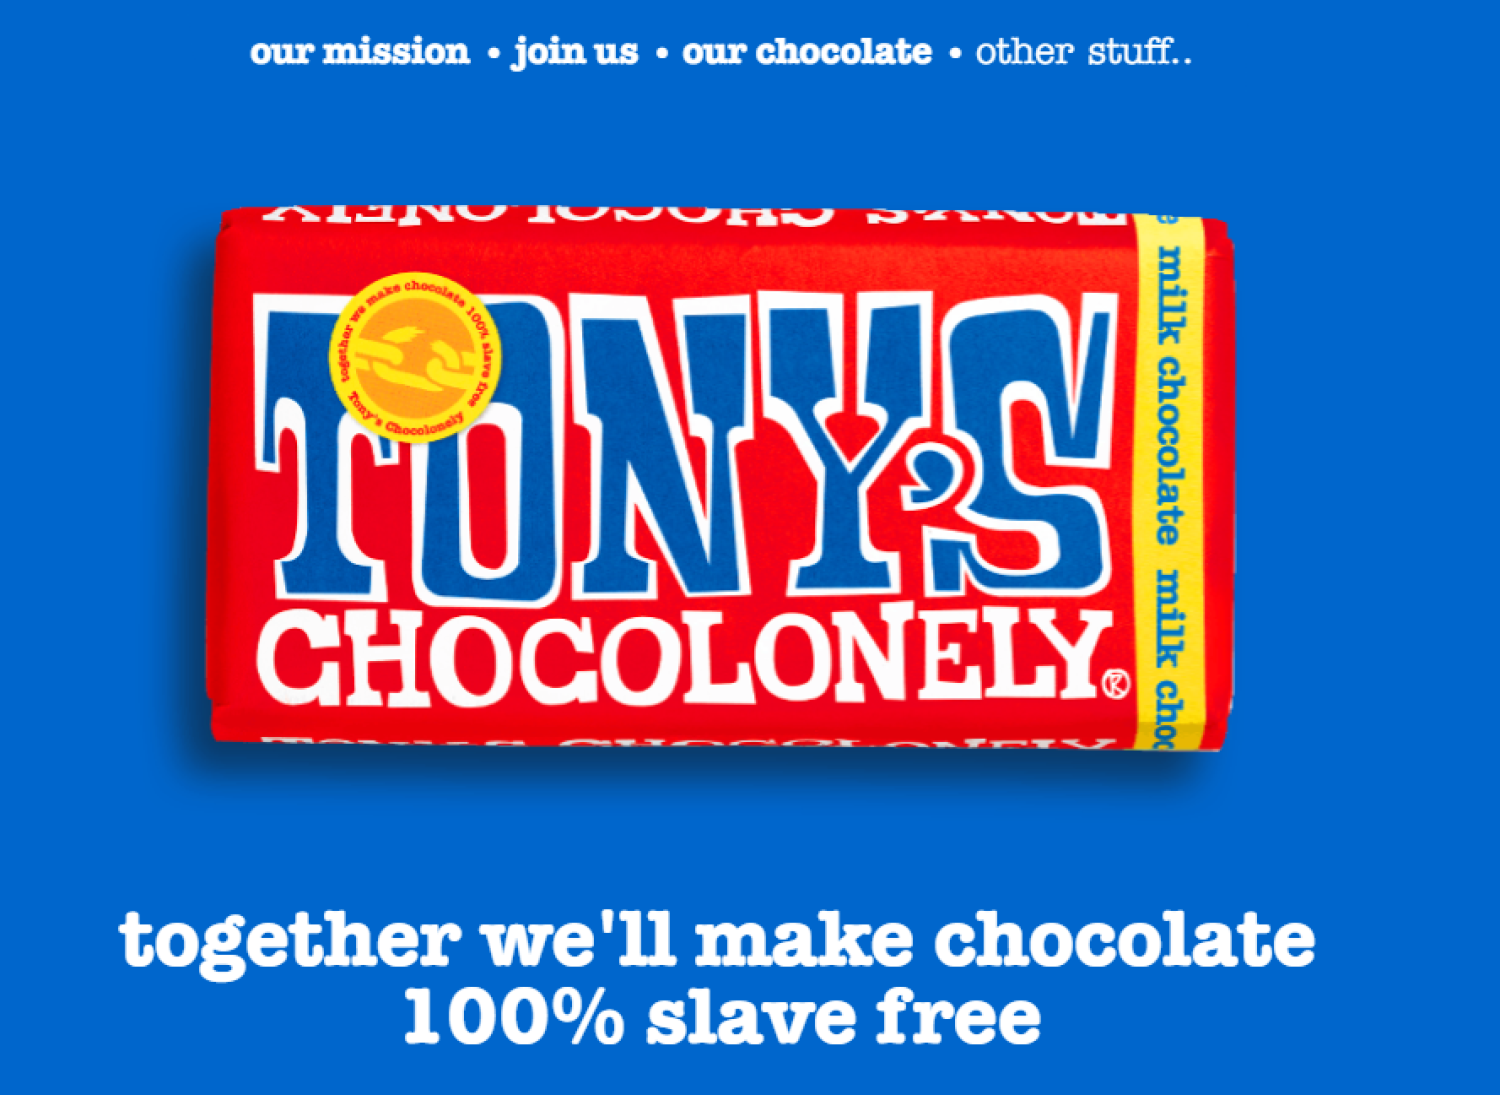 The chocolate bar that's ending slavery